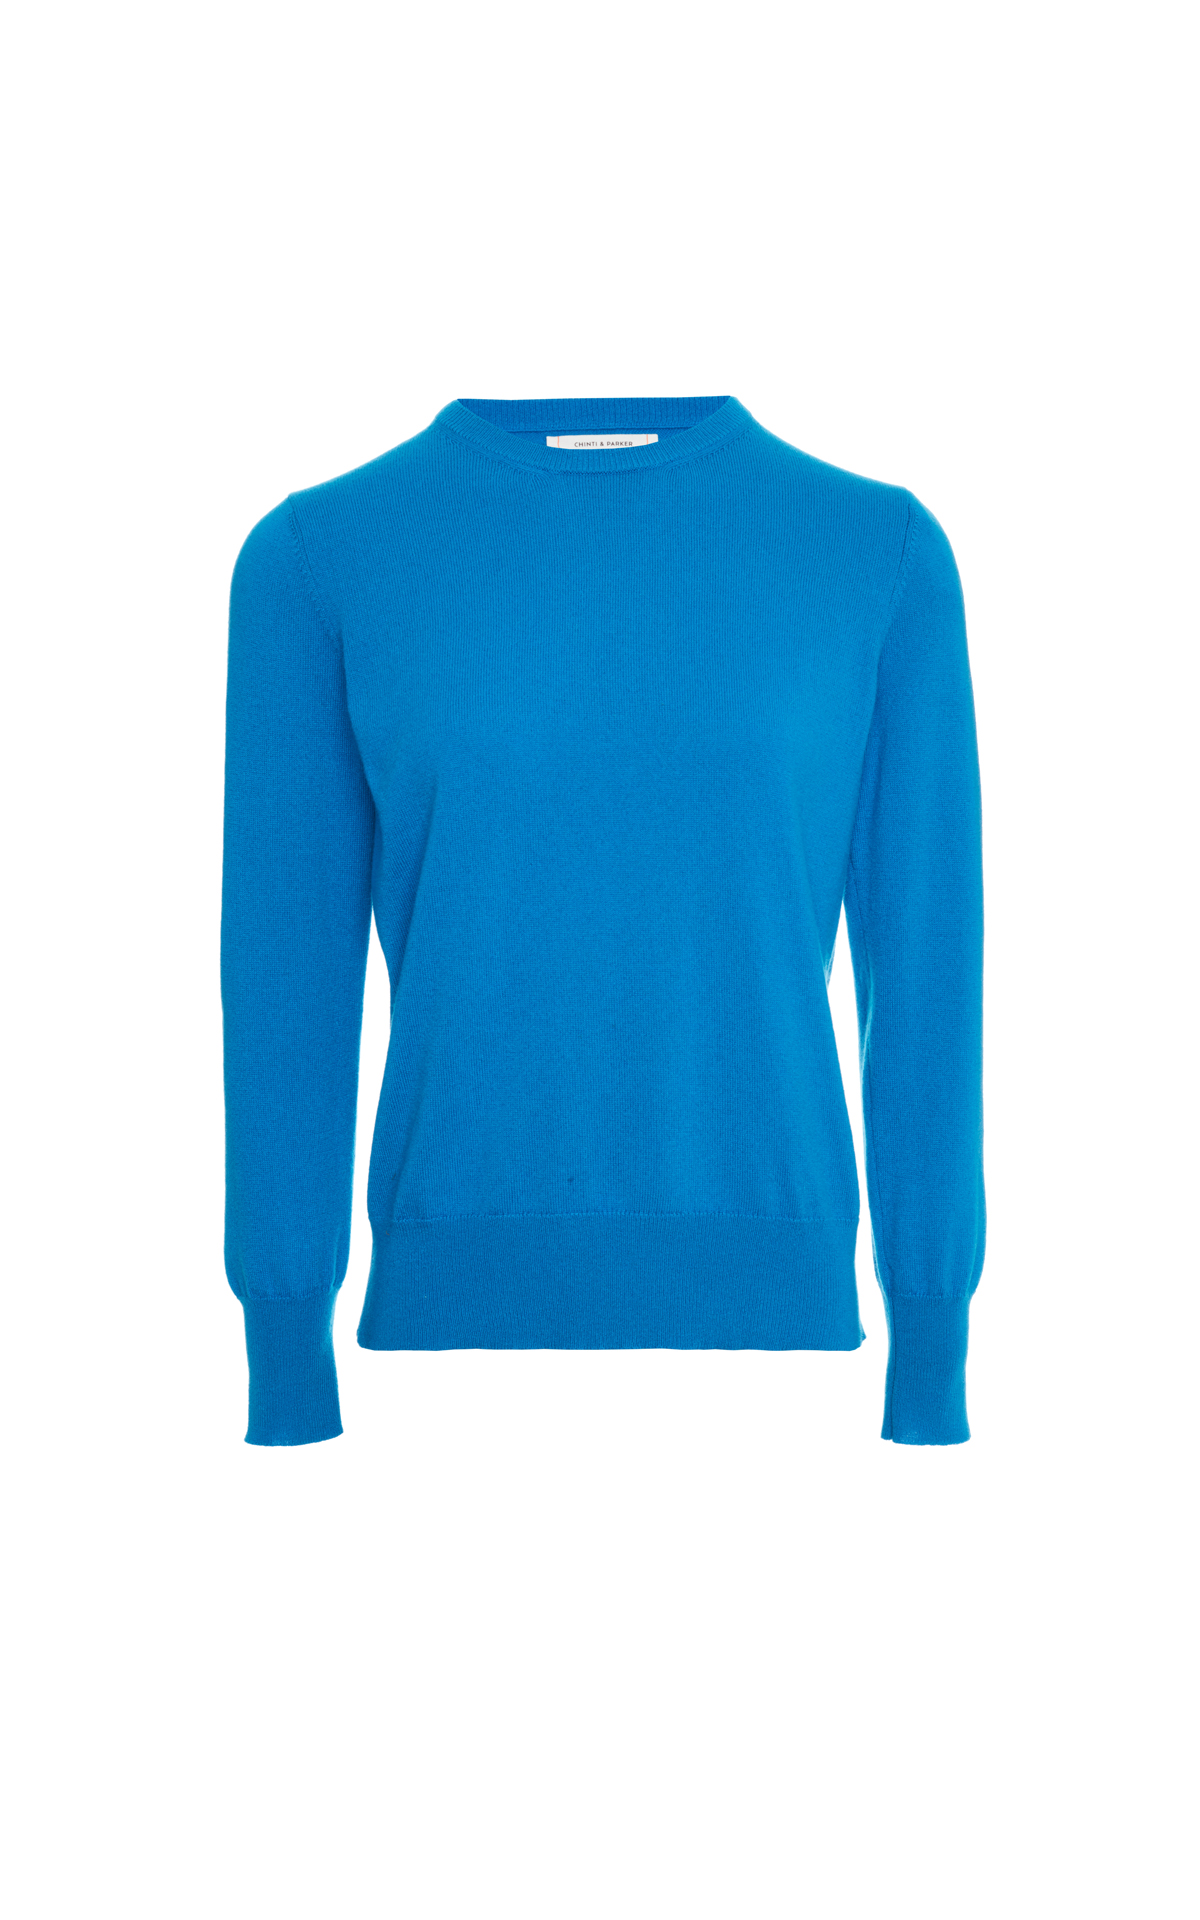 Chinti & Parker Teal crew neck sweater from Bicester Village